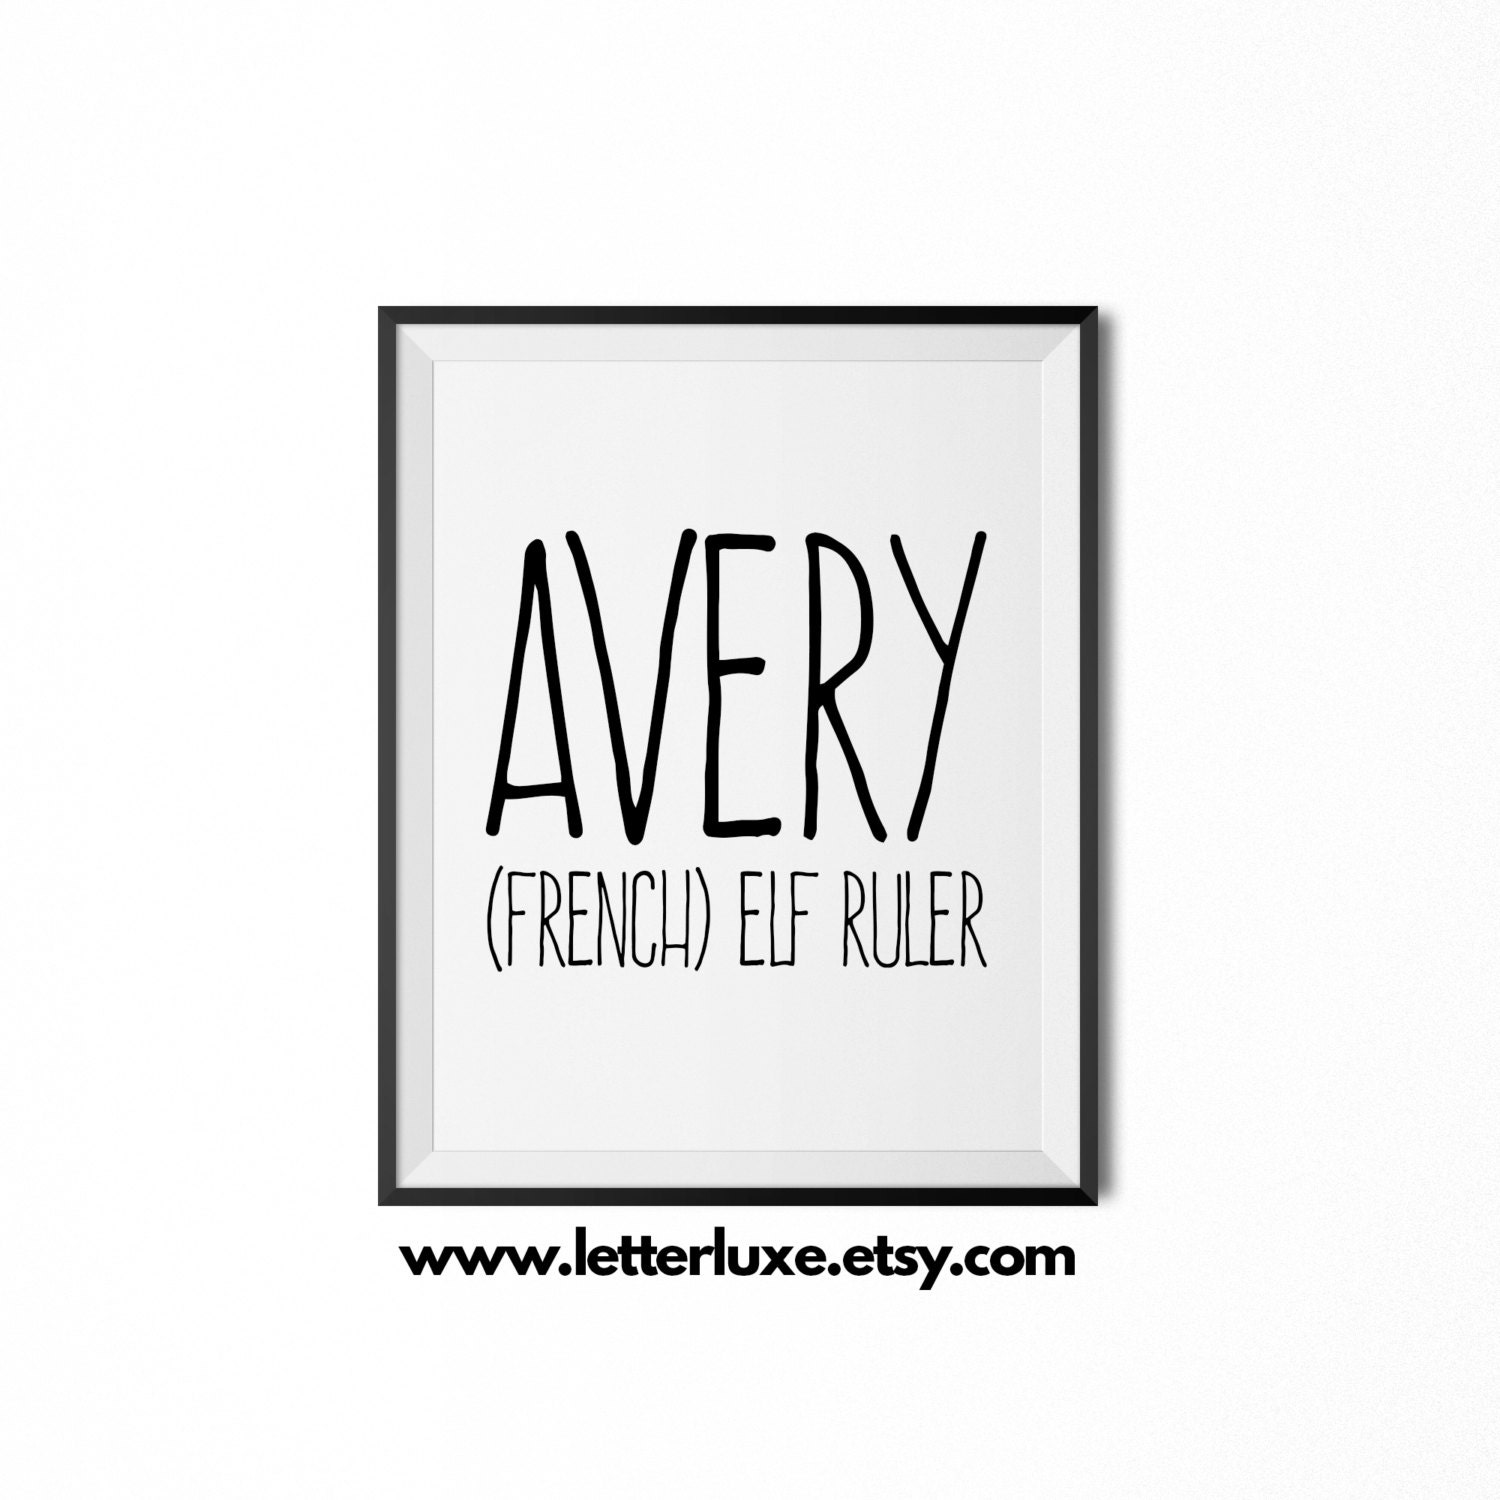 Avery name meaning art printable baby shower gift nursery zoom negle Choice Image